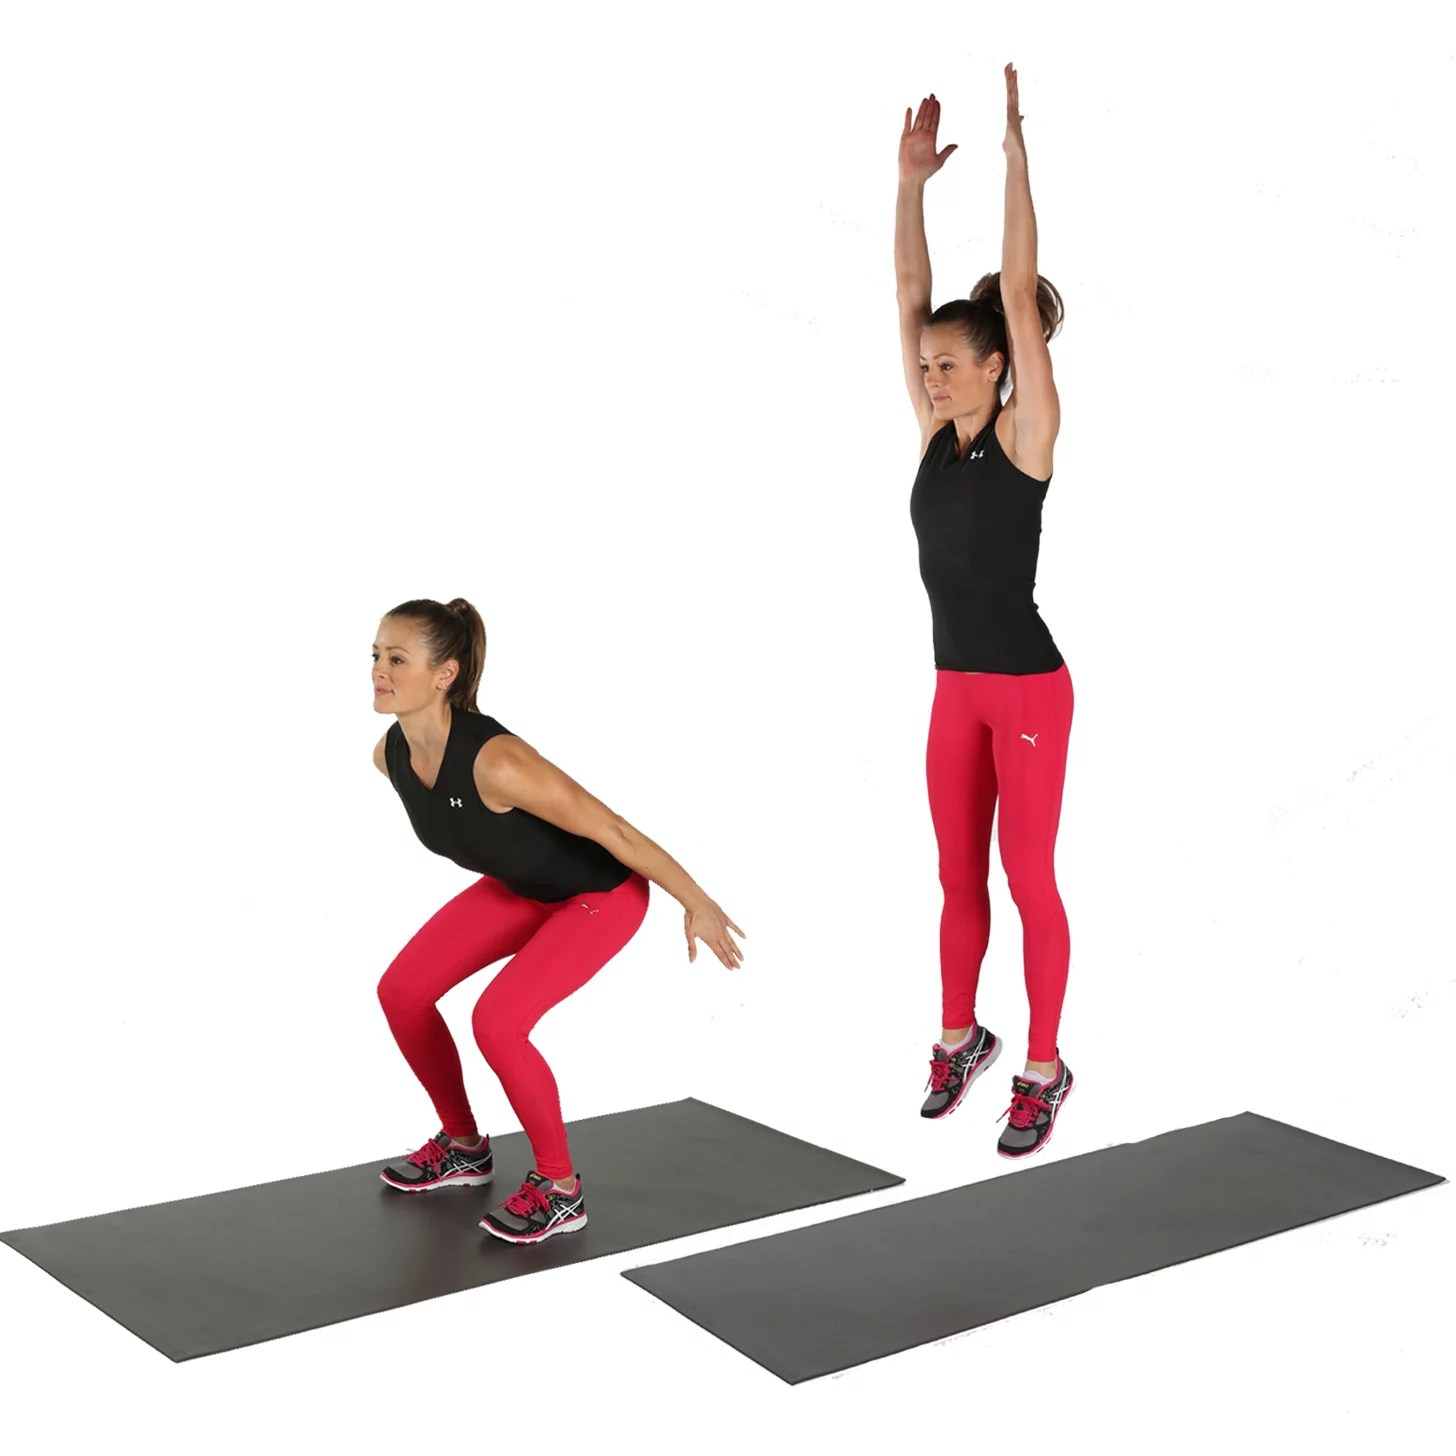 Jumping Fitness Jump Squats 25 Exercises You Should Be Doing If You Want